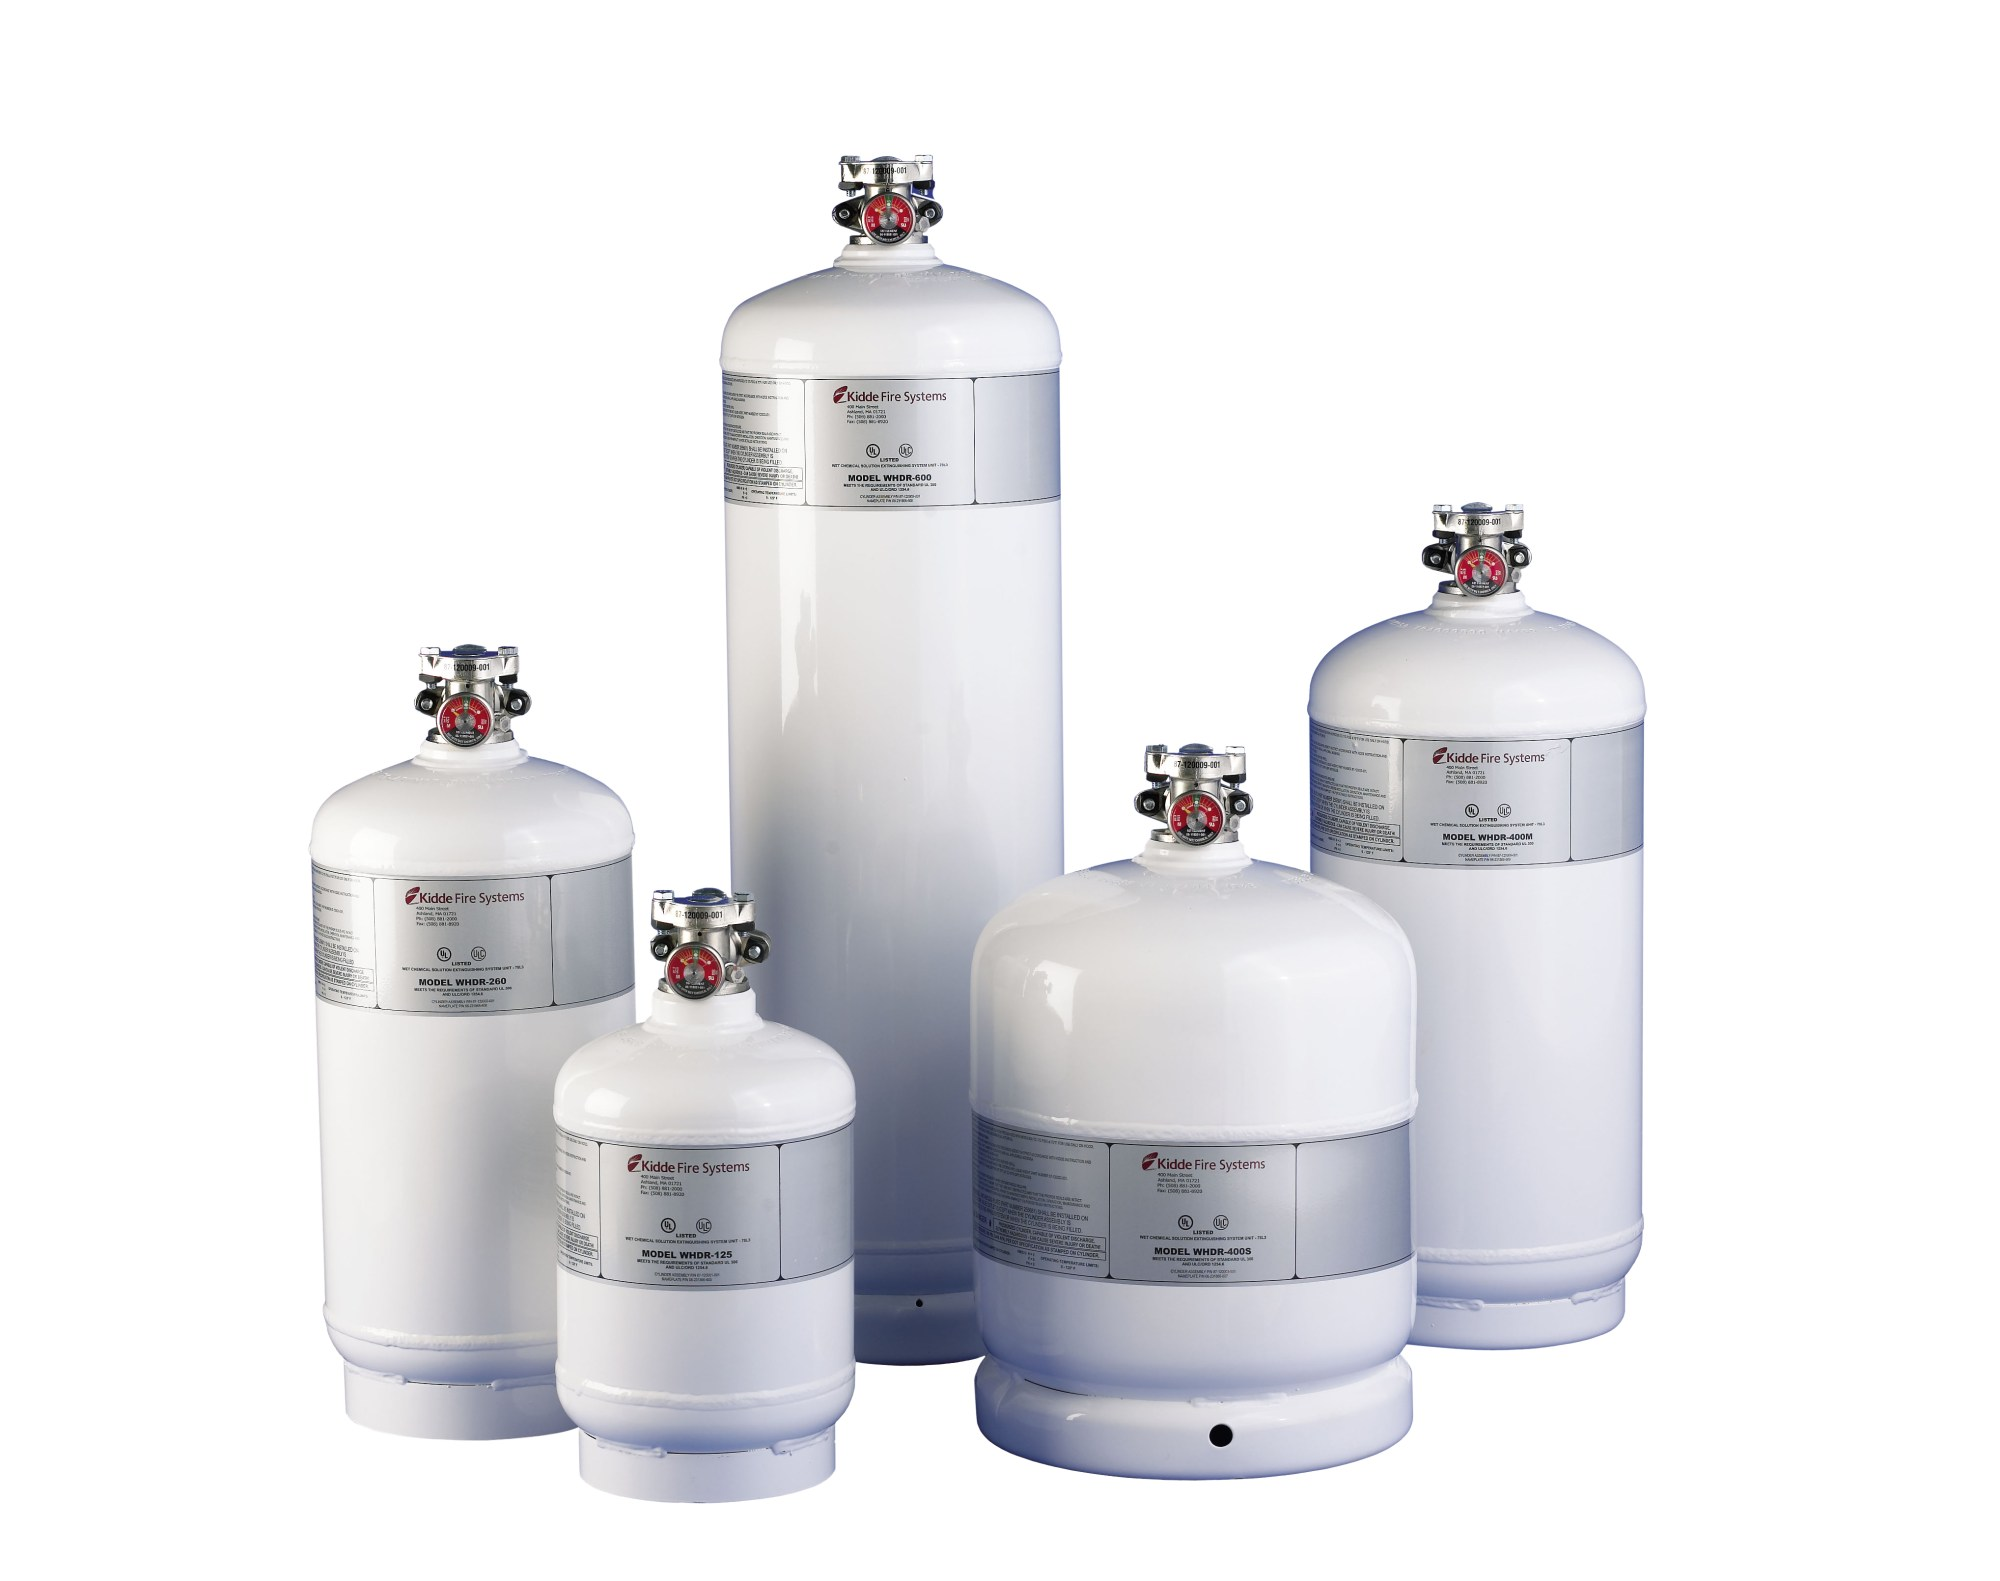 hight resolution of the kidde whdr wet chemical kitchen system is a cost effective pre engineered fire protection solution designed for a quick and easy installation